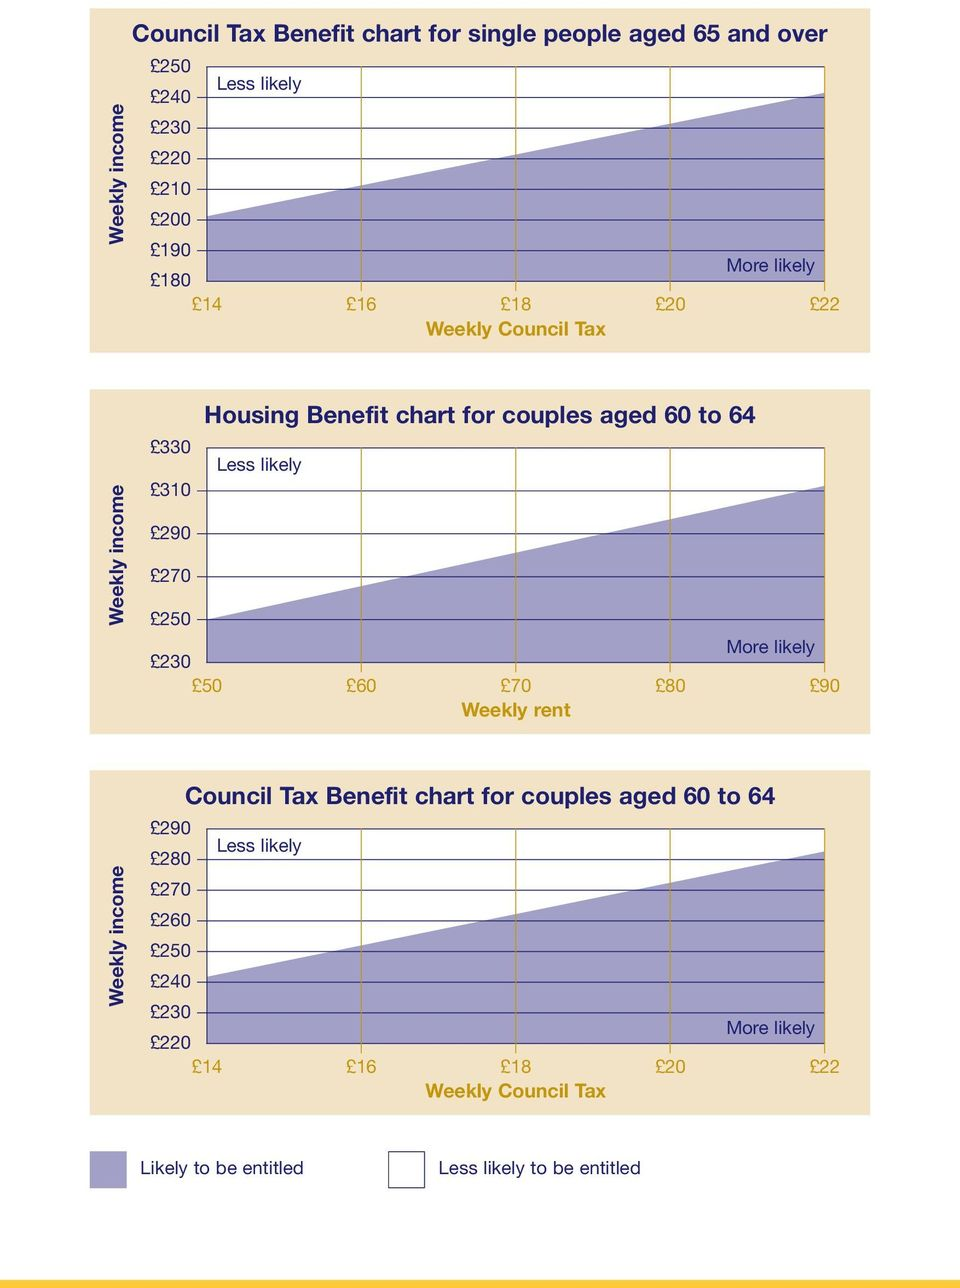 270 250 230 More likely 50 60 70 80 90 Weekly rent Weekly income Council Tax Benefit chart for couples aged 60 to 64 290 280